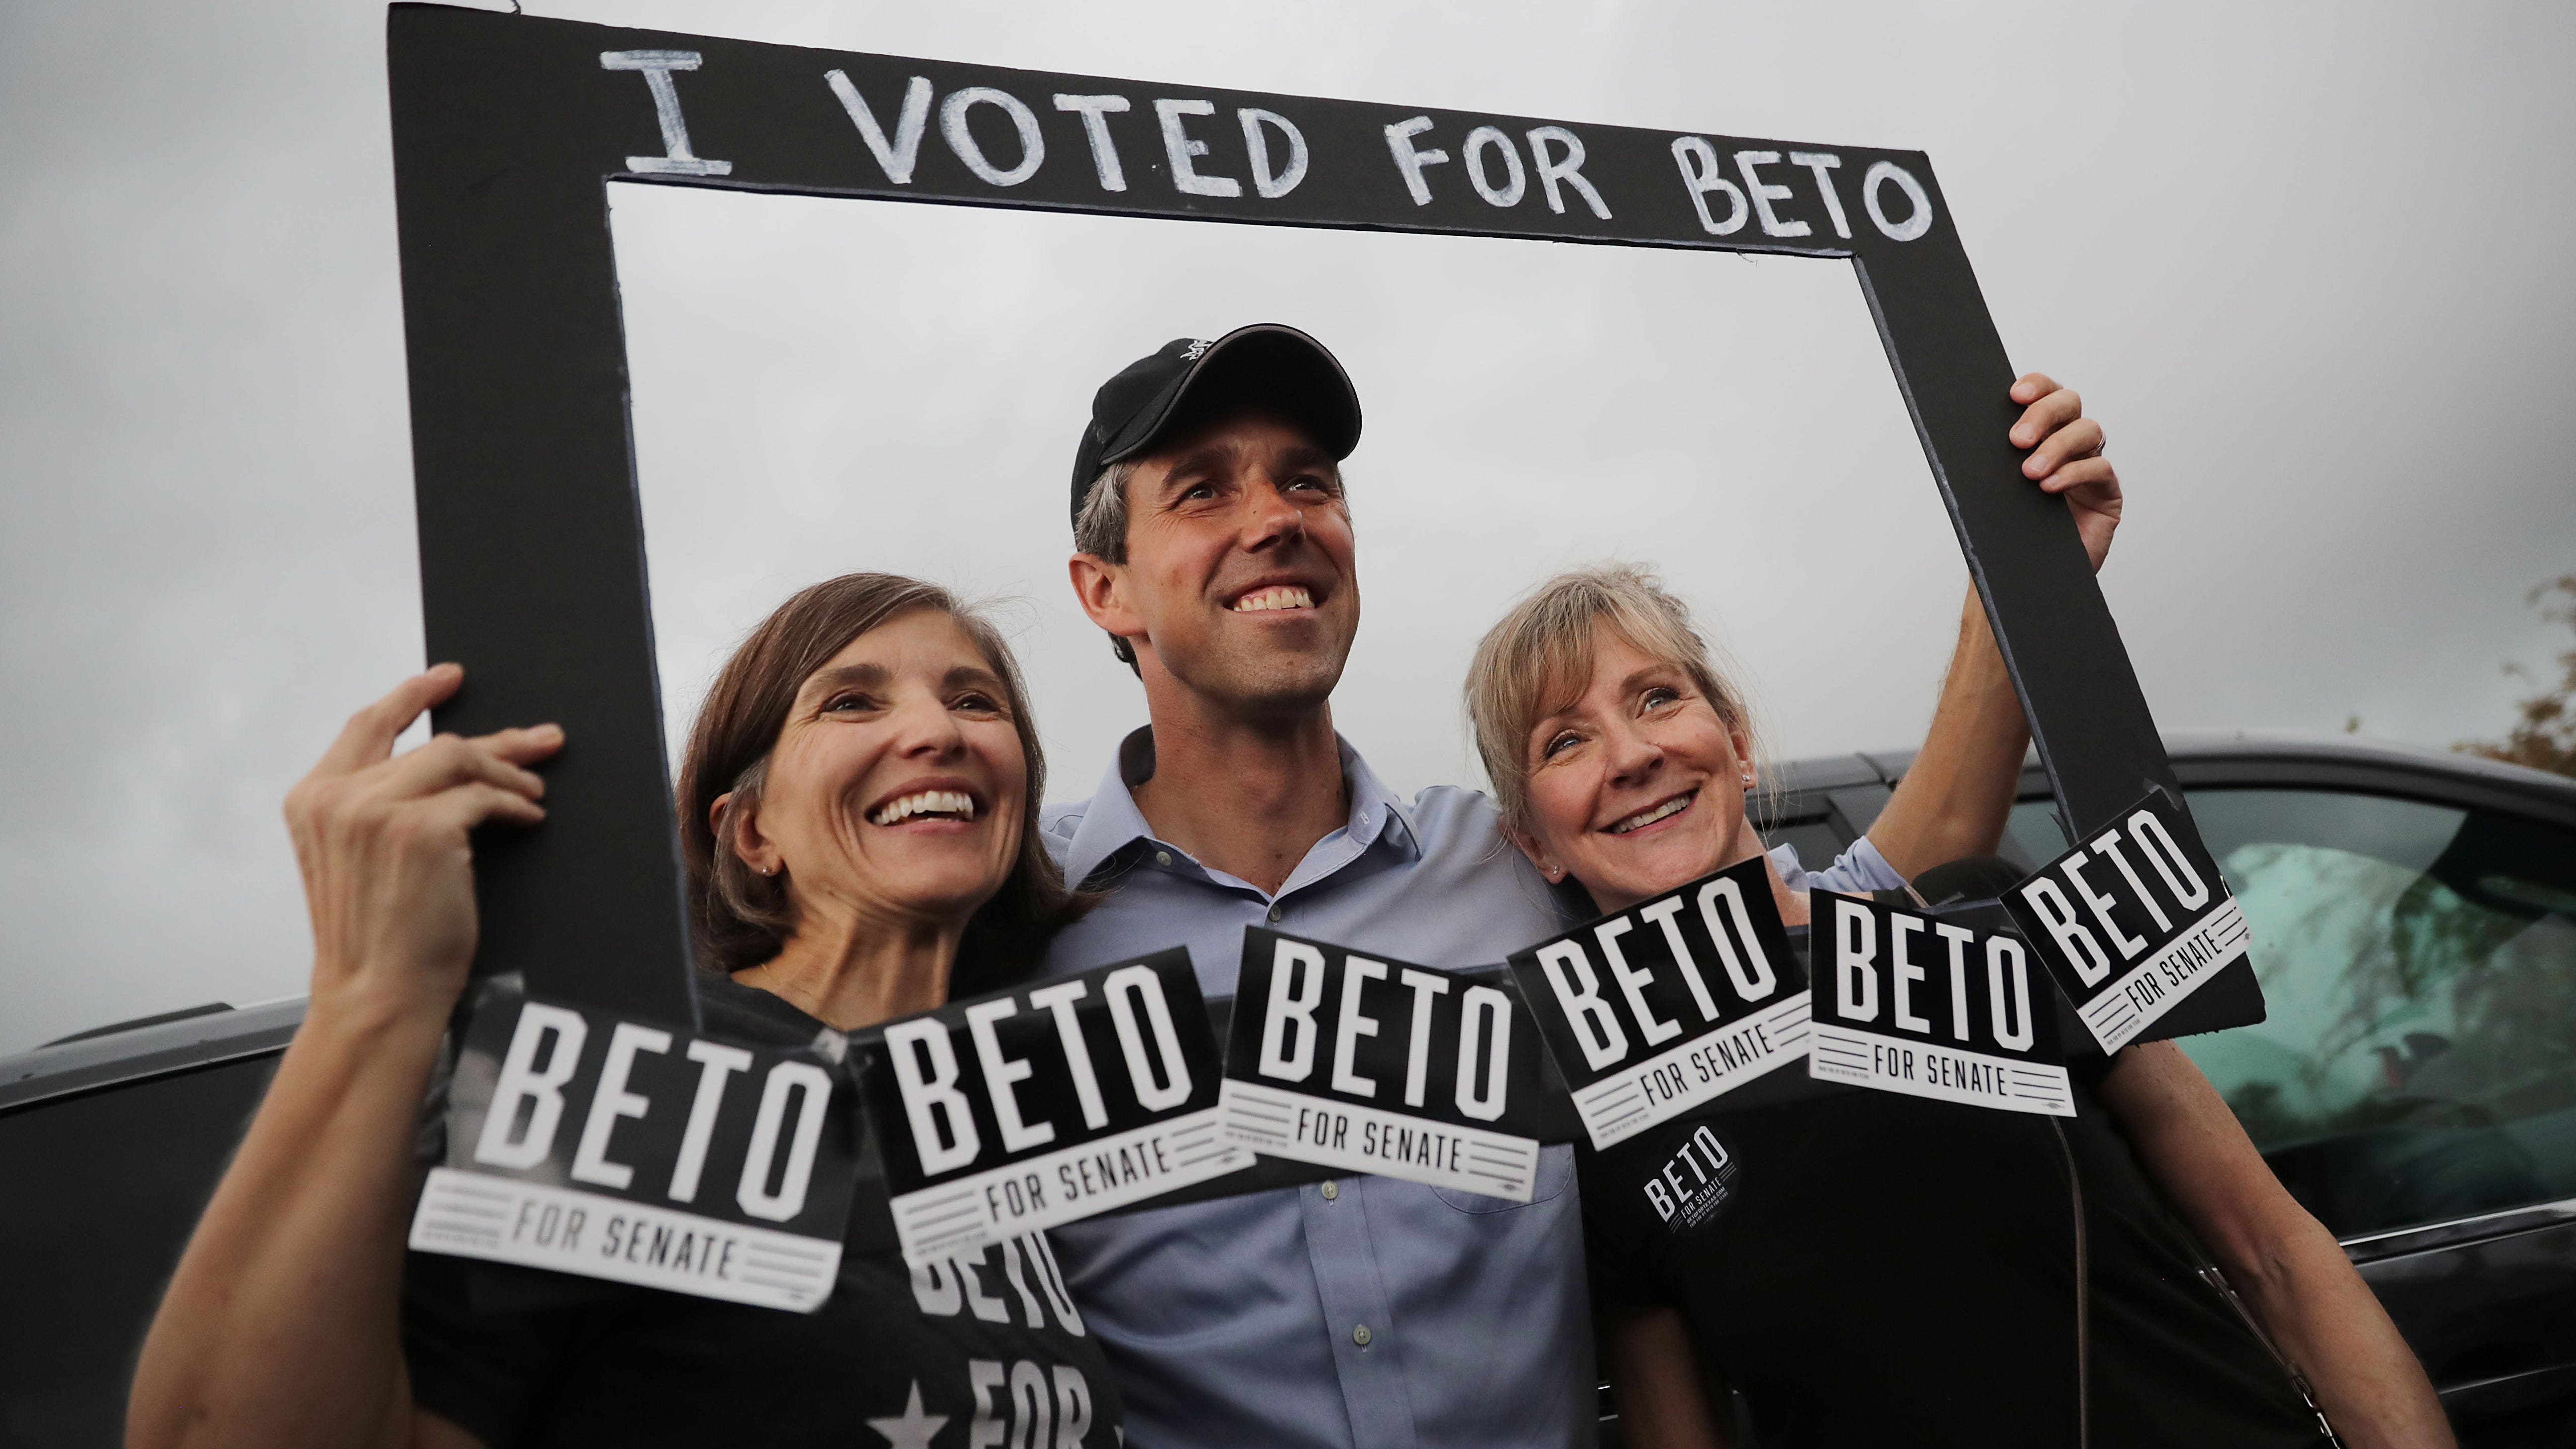 U.S. Senate candidate Rep. Beto O'Rourke (D-TX) poses for photographs with supporters during a campaign rally at Gilbert Garza Park Oct. 31, 2018 in San Antonio, Texas. With less than a week before Election Day, O'Rourke is driving across the state in his race against incumbent Sen. Ted Cruz (R-TX).